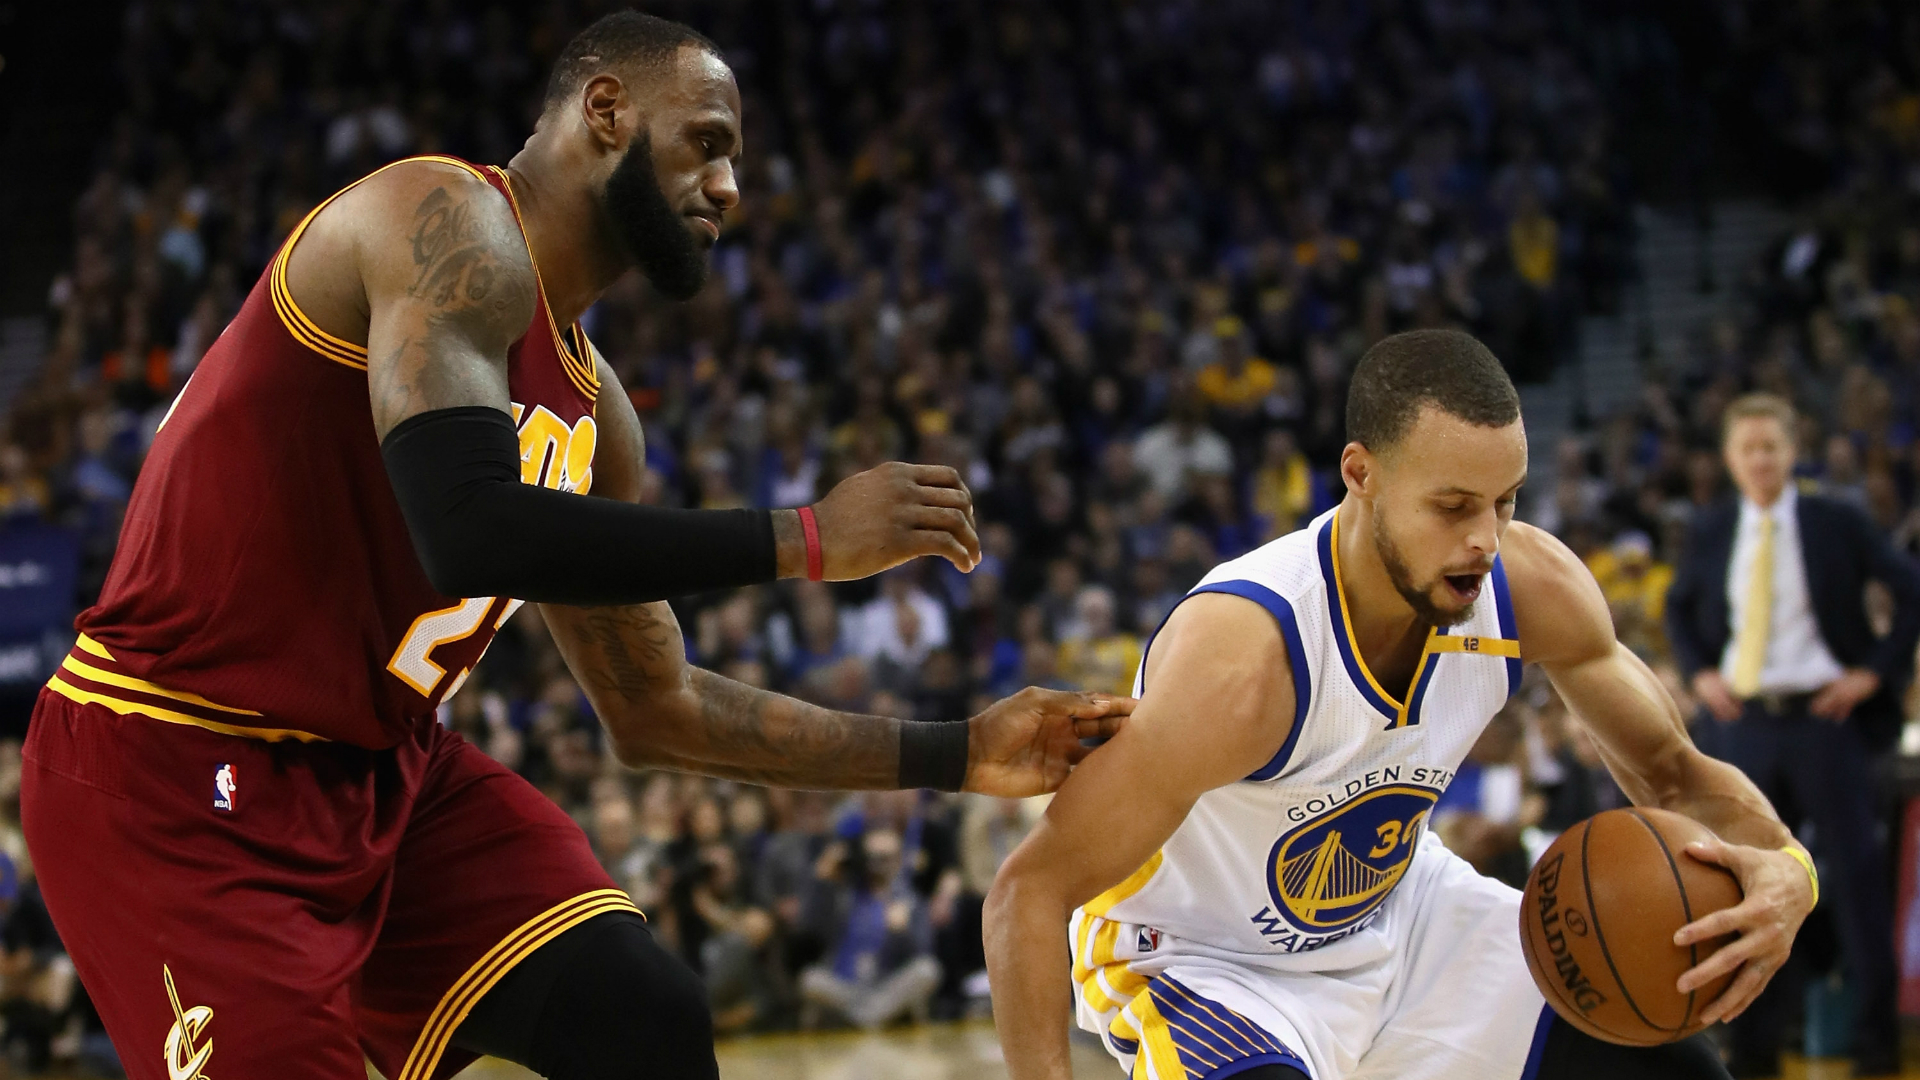 NBA playoff race: Western Conference seeding still up in the air